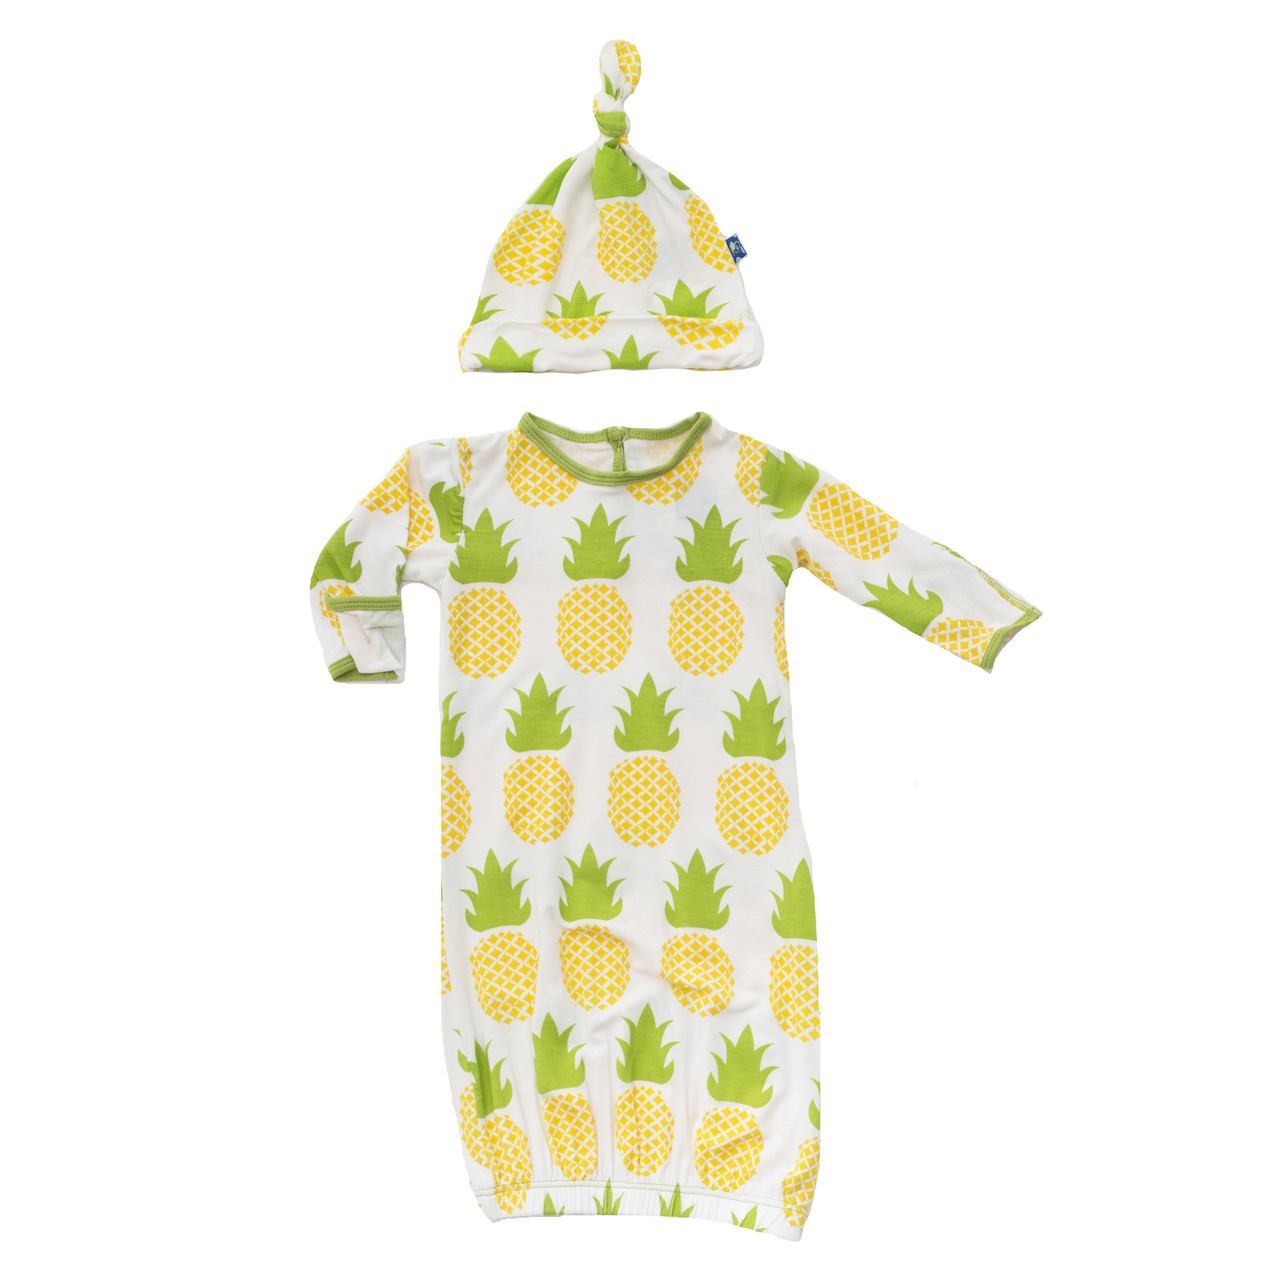 0bd75fdf4 KicKee Pants Newborn Layette Gown   Hat Outfit Set-Neutral Baby ...